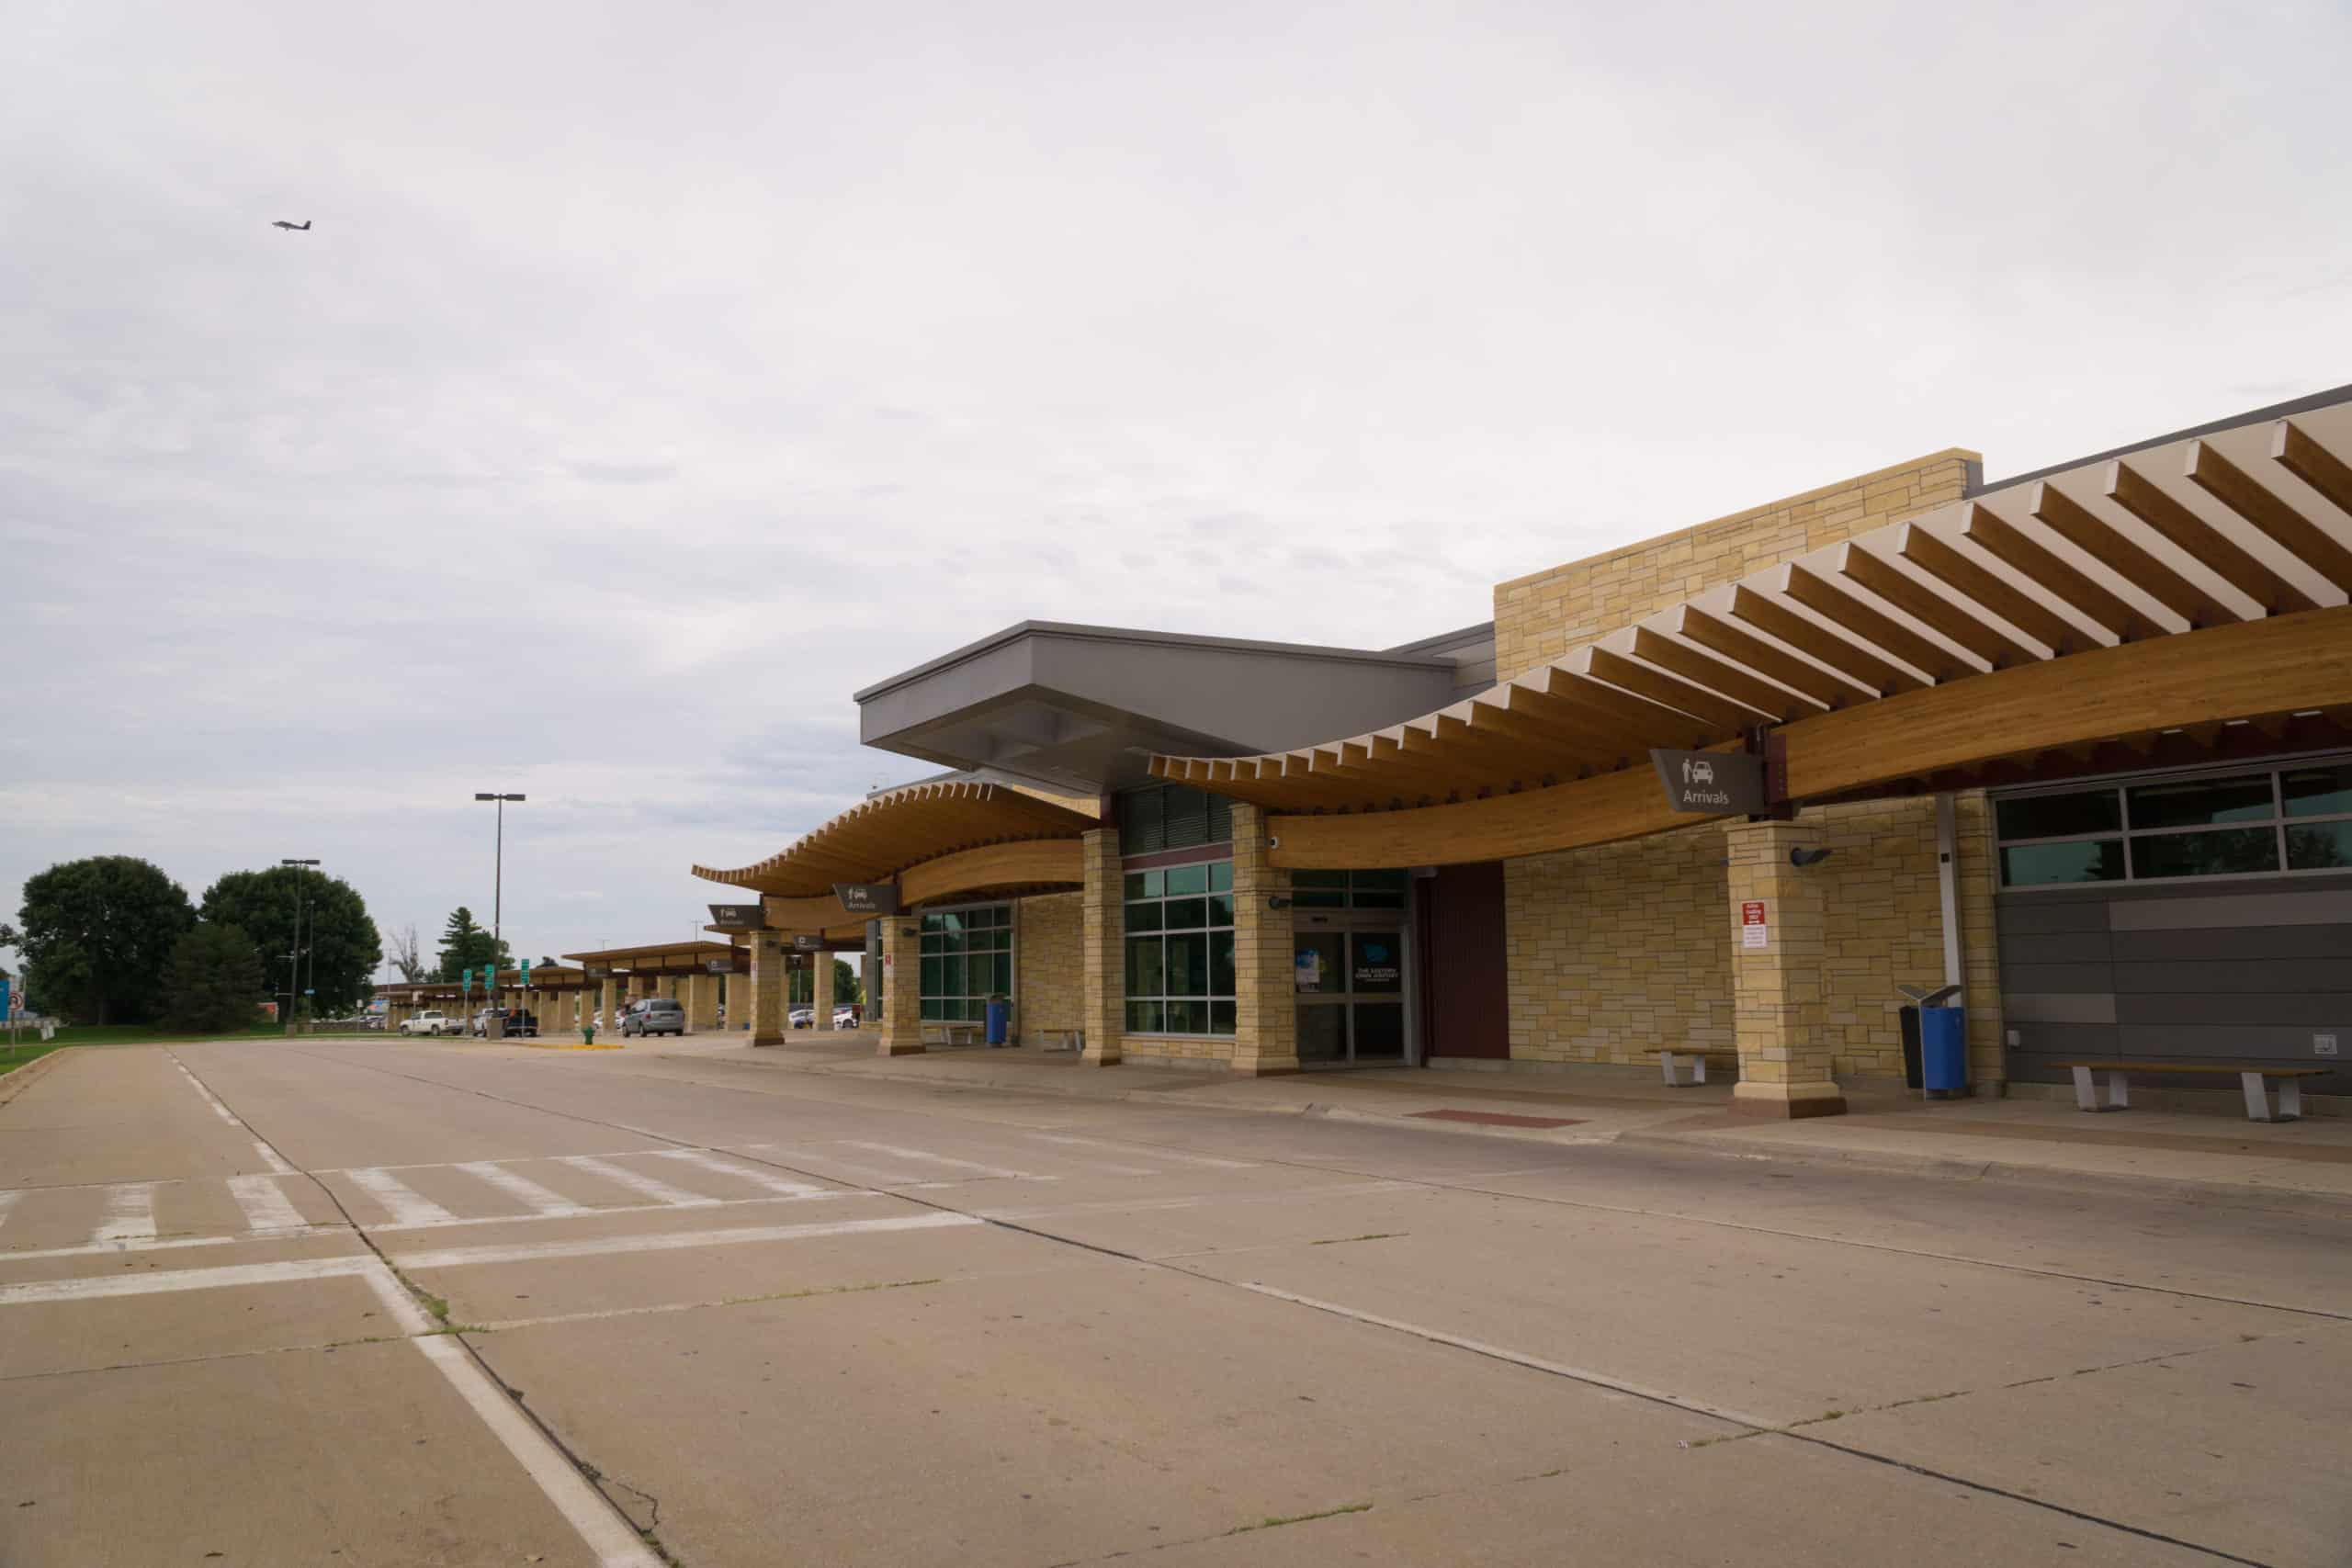 Easteran Iowa Airport Terminal Concrete